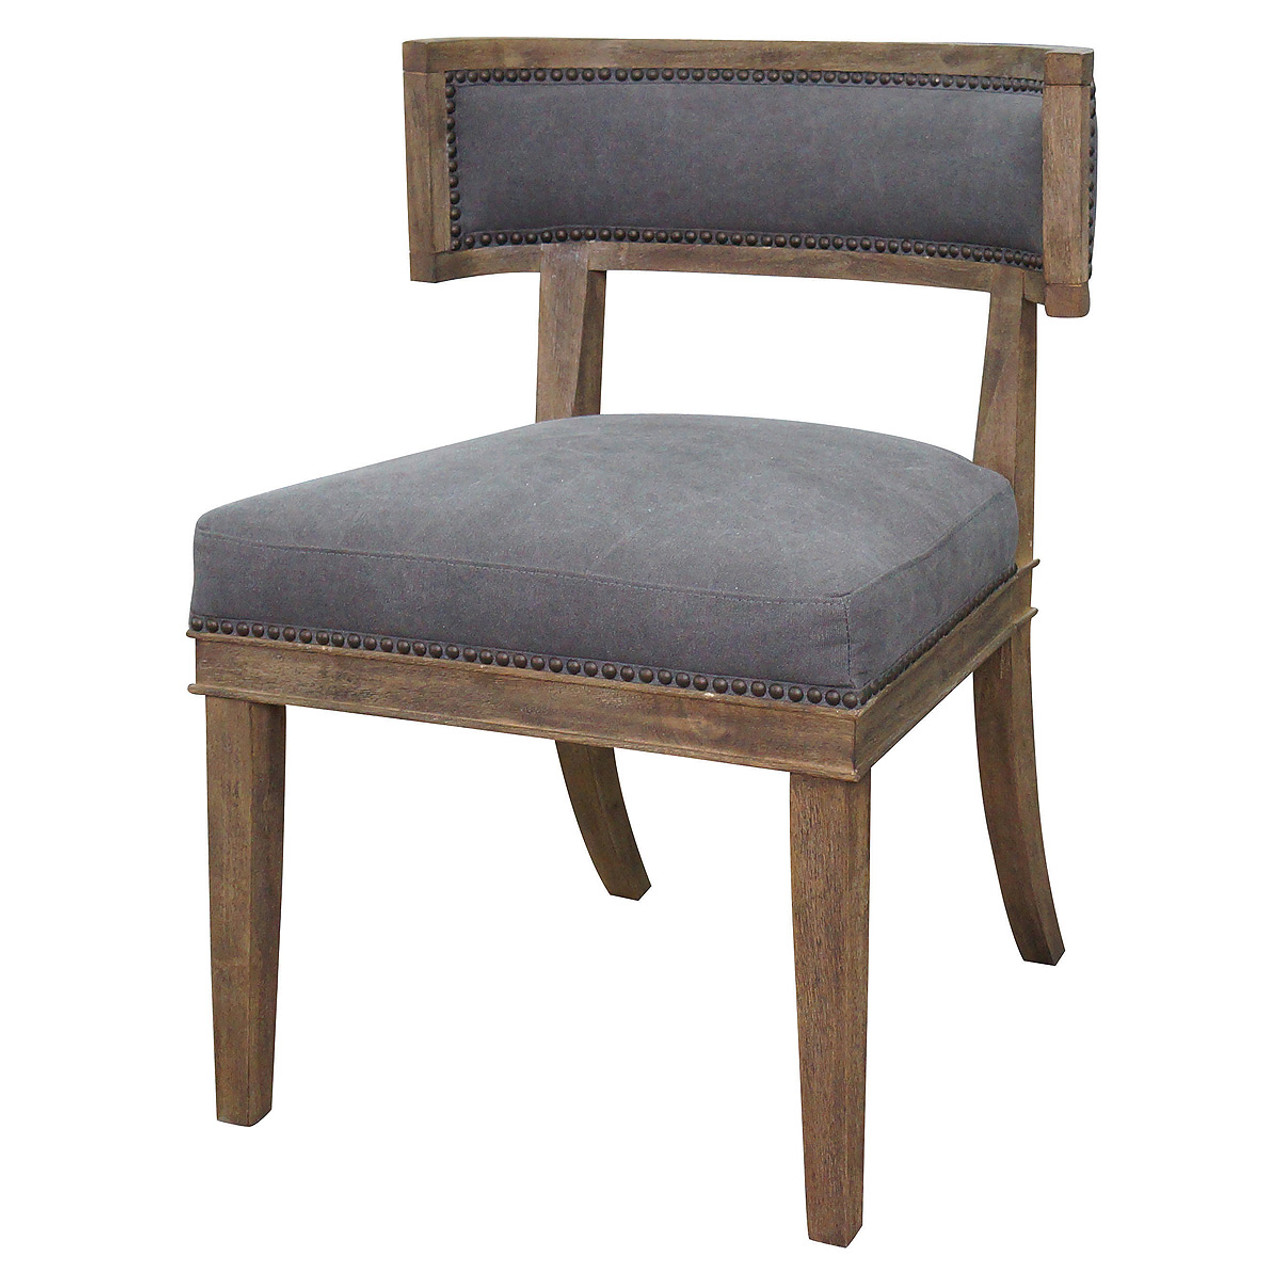 Nailhead dining chairs dining room Tufted Nailhead Carter Upholstered Curved Dining Chair Zin Home Carter Upholstered Curved Dining Chair Zin Home